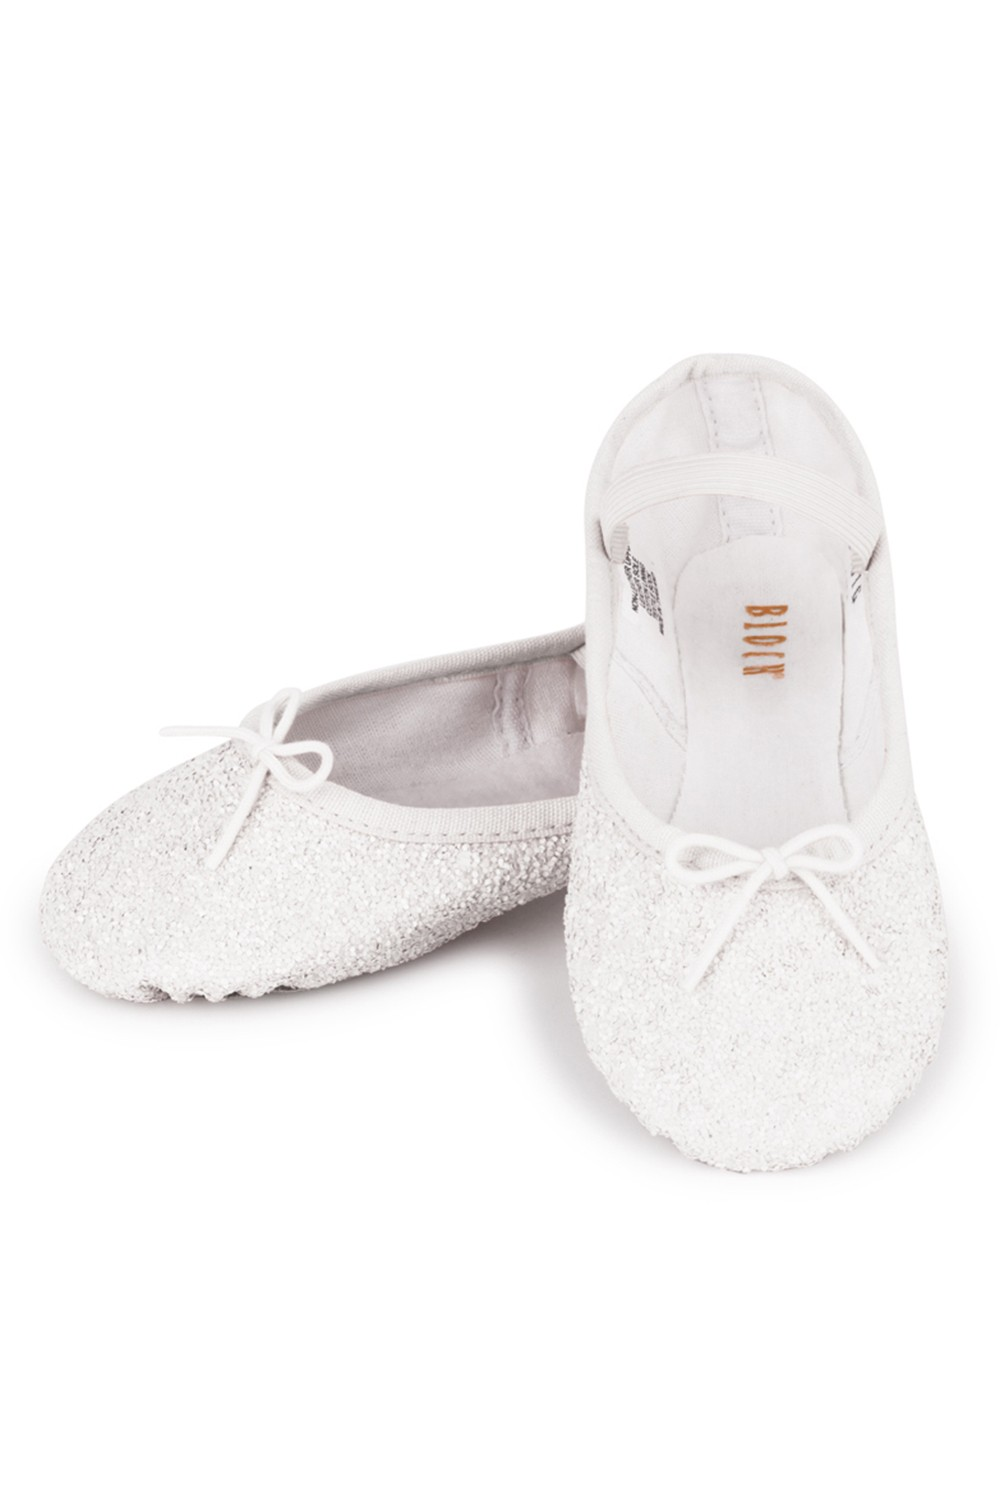 Sparkle - Bebè Girl's Ballet Shoes